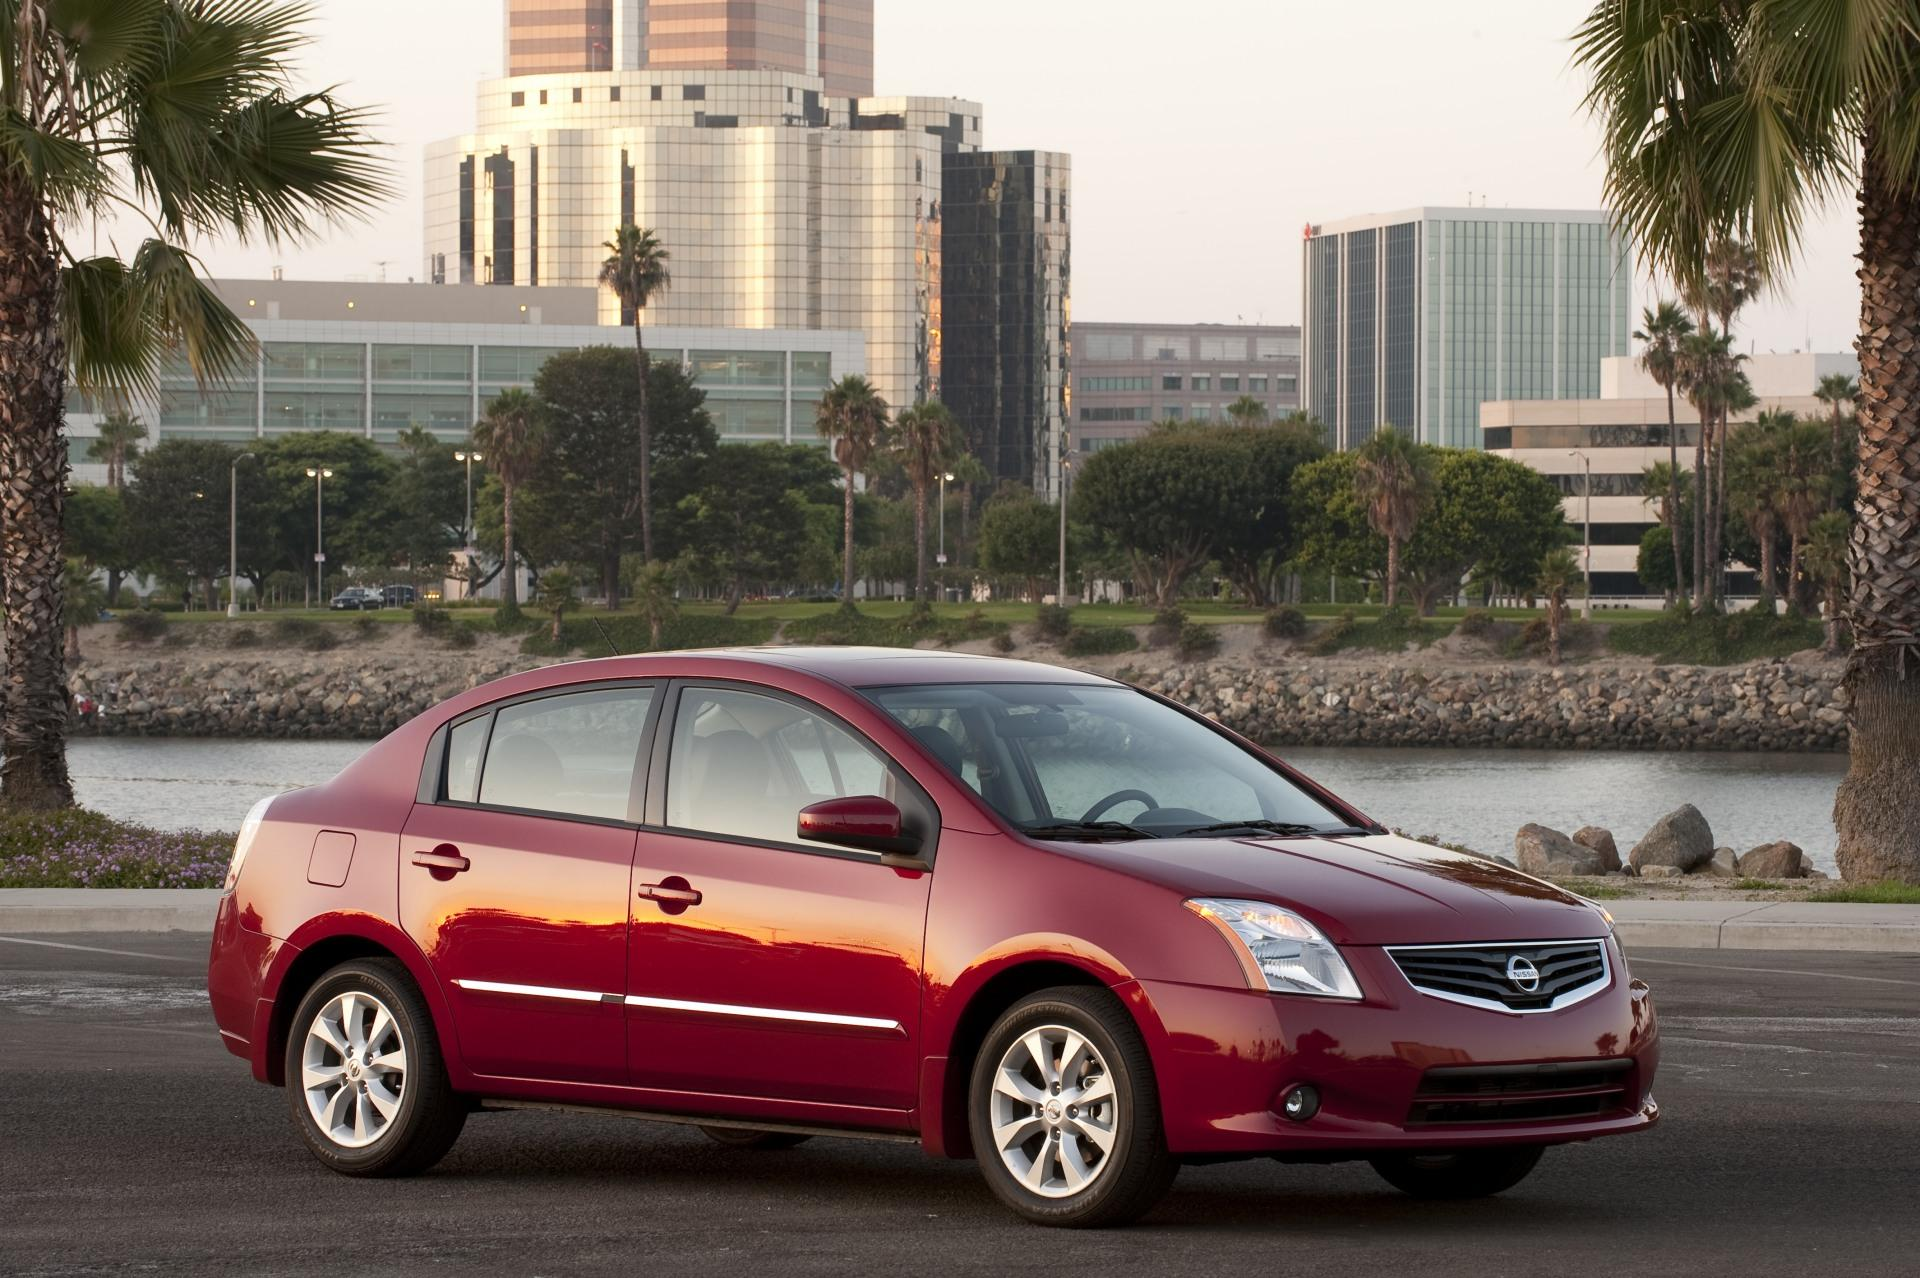 2010 Nissan Sentra News and Information | conceptcarz.com